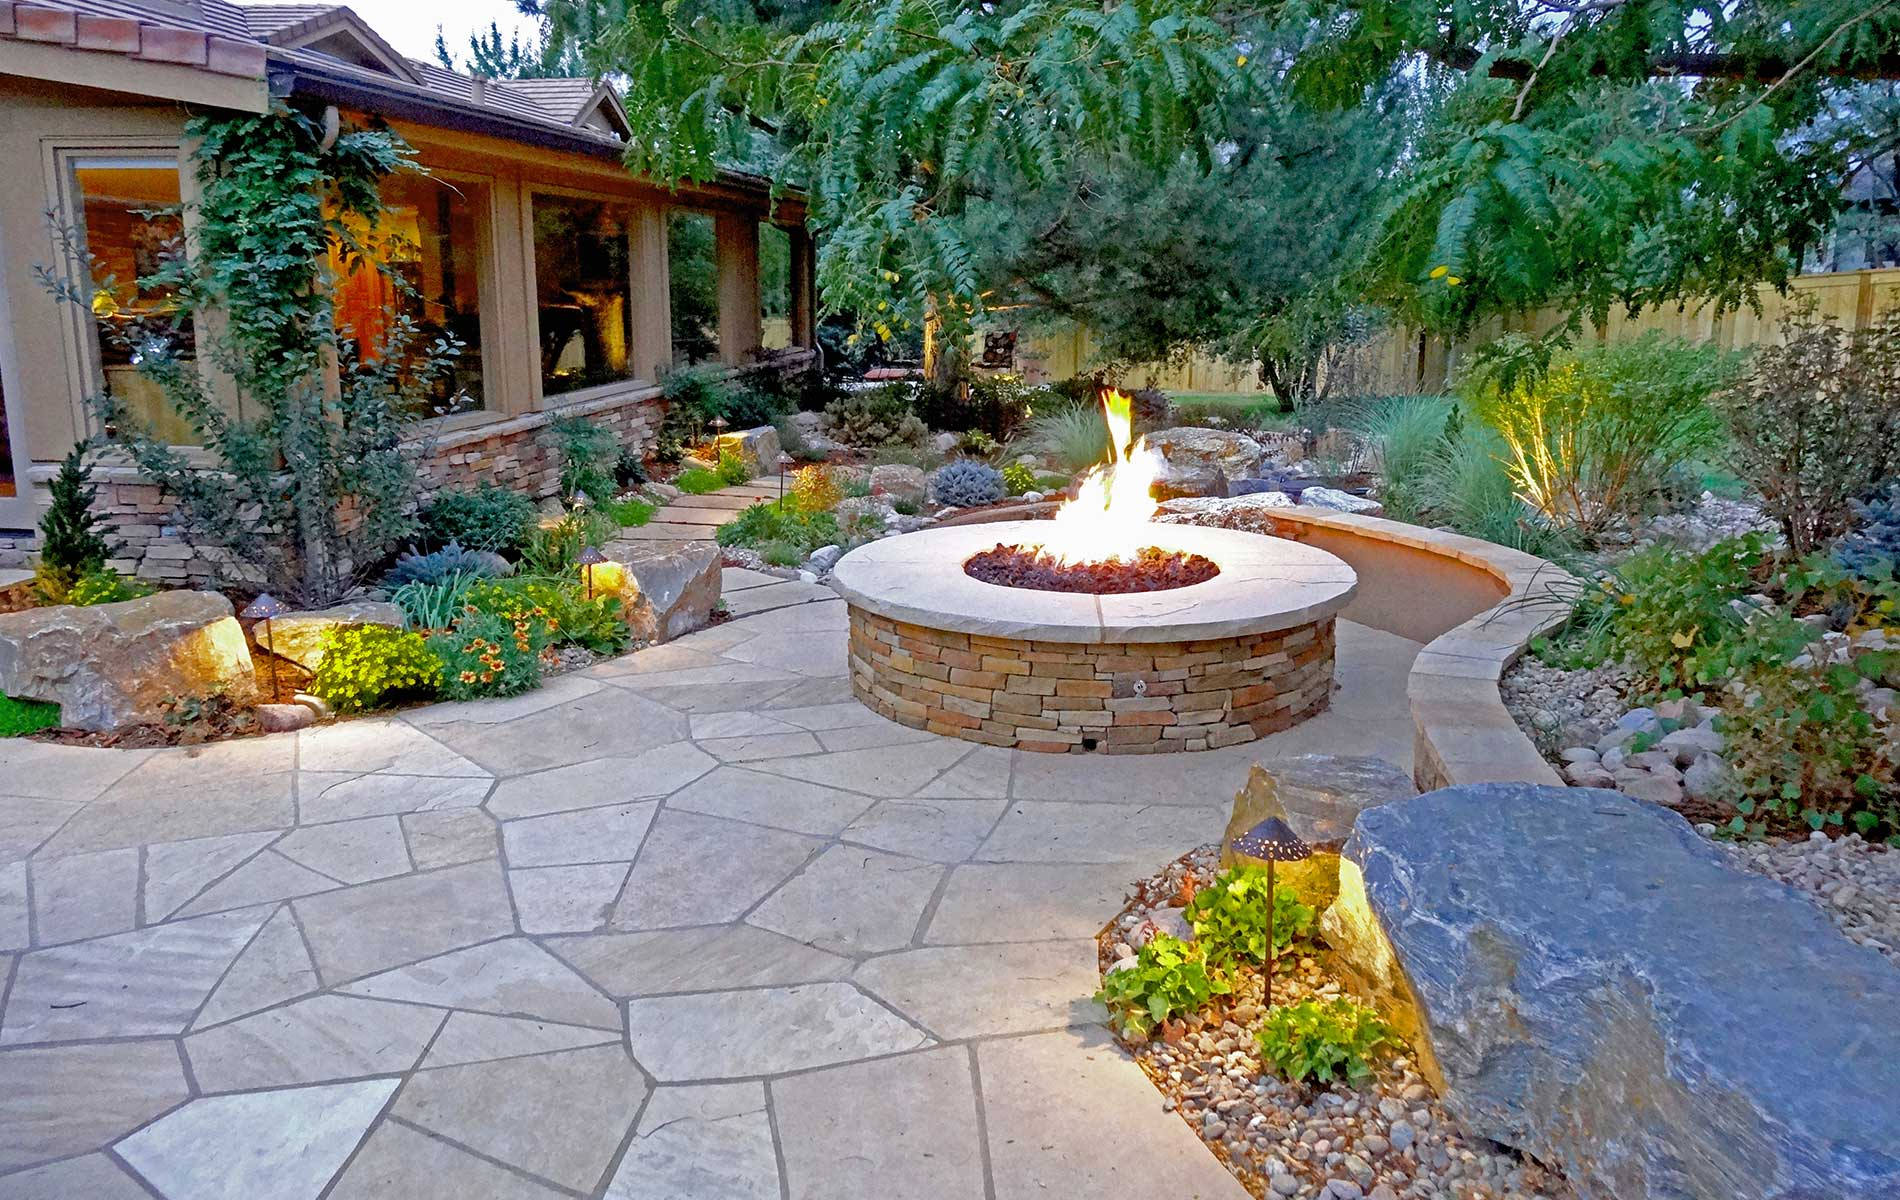 Best Stone Patio Ideas, Designs and Installation Tips ... on Rock Patio Designs id=12071